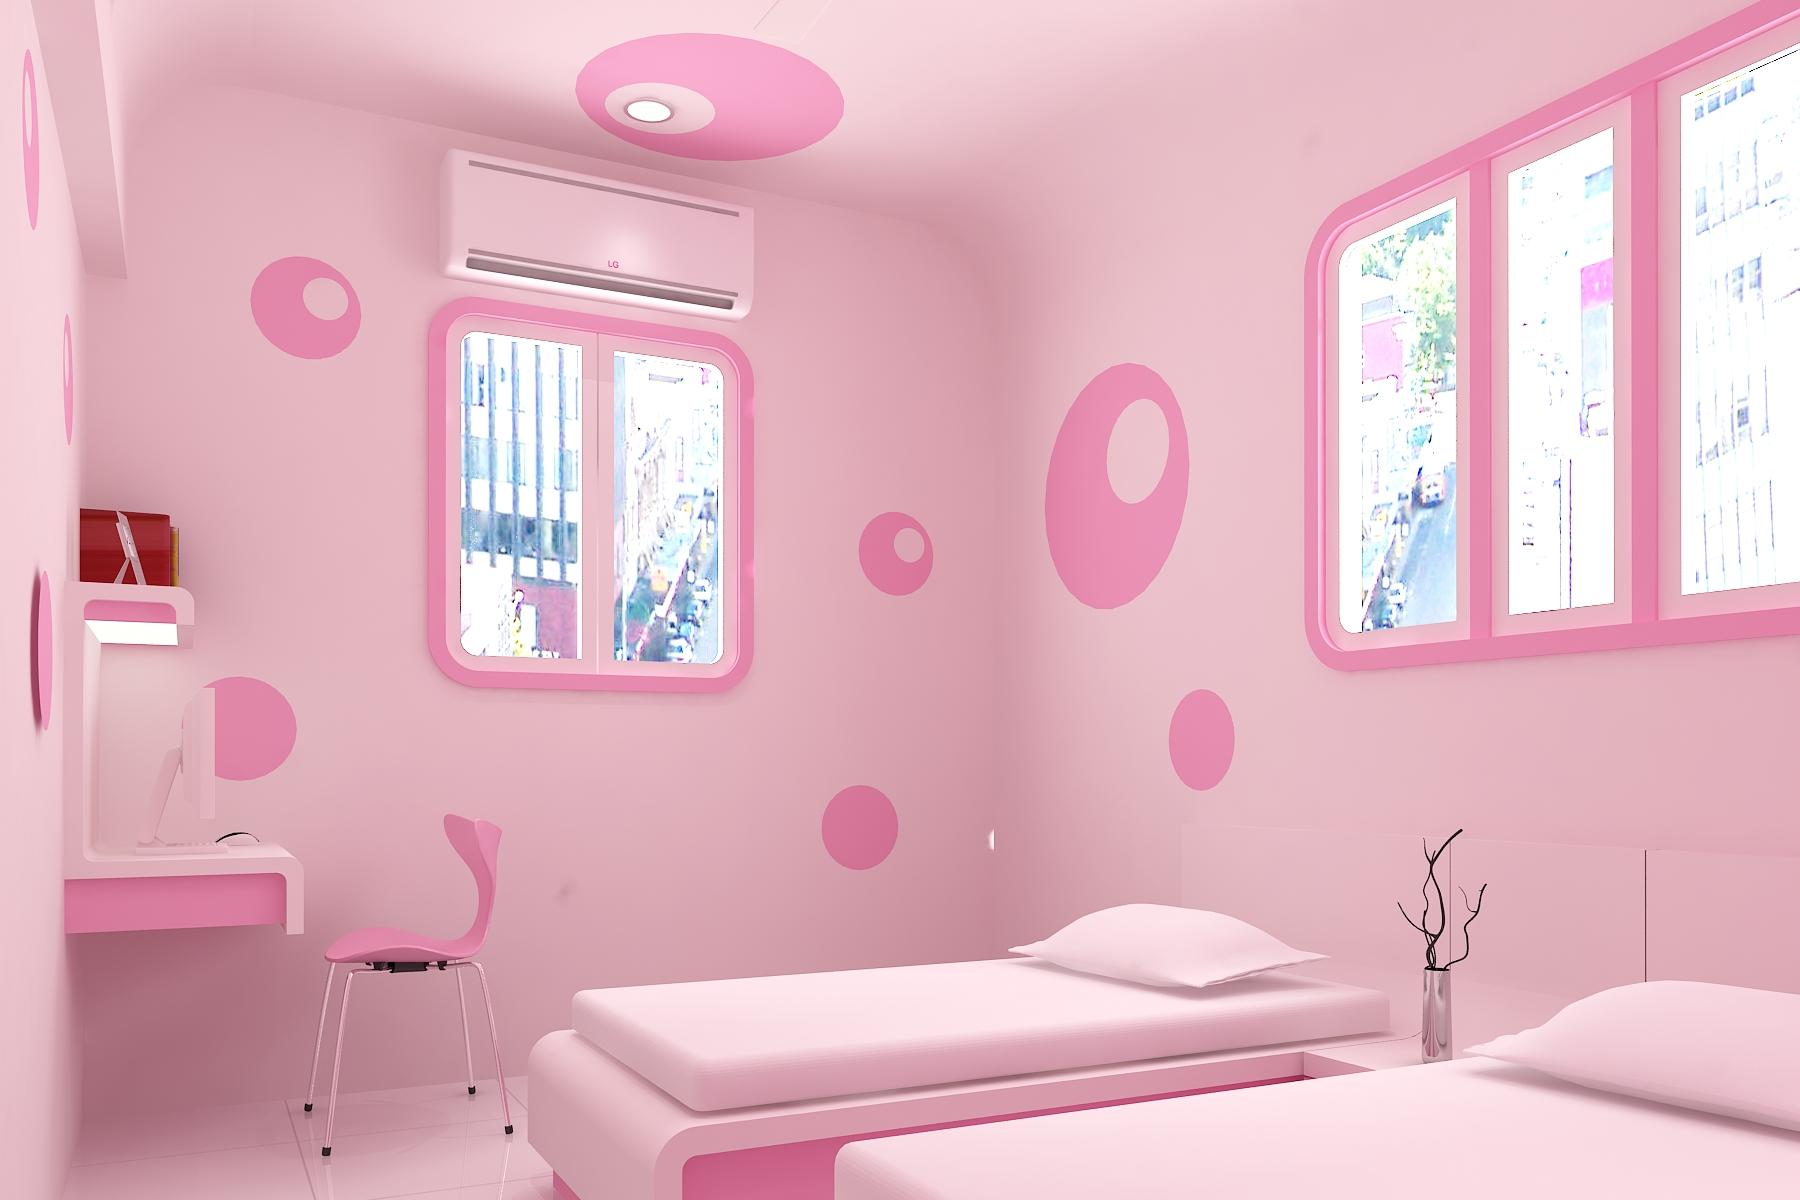 20/05/2020· hello loveliesss!today i show you some bloxburg kids bedroom ideas!all of these rooms used advanced placing gamepass!☆.。.:*roblox name.。.:*☆itsakeila (unfort. Chic Pink Bedroom Design Ideas for Fashionable Girl